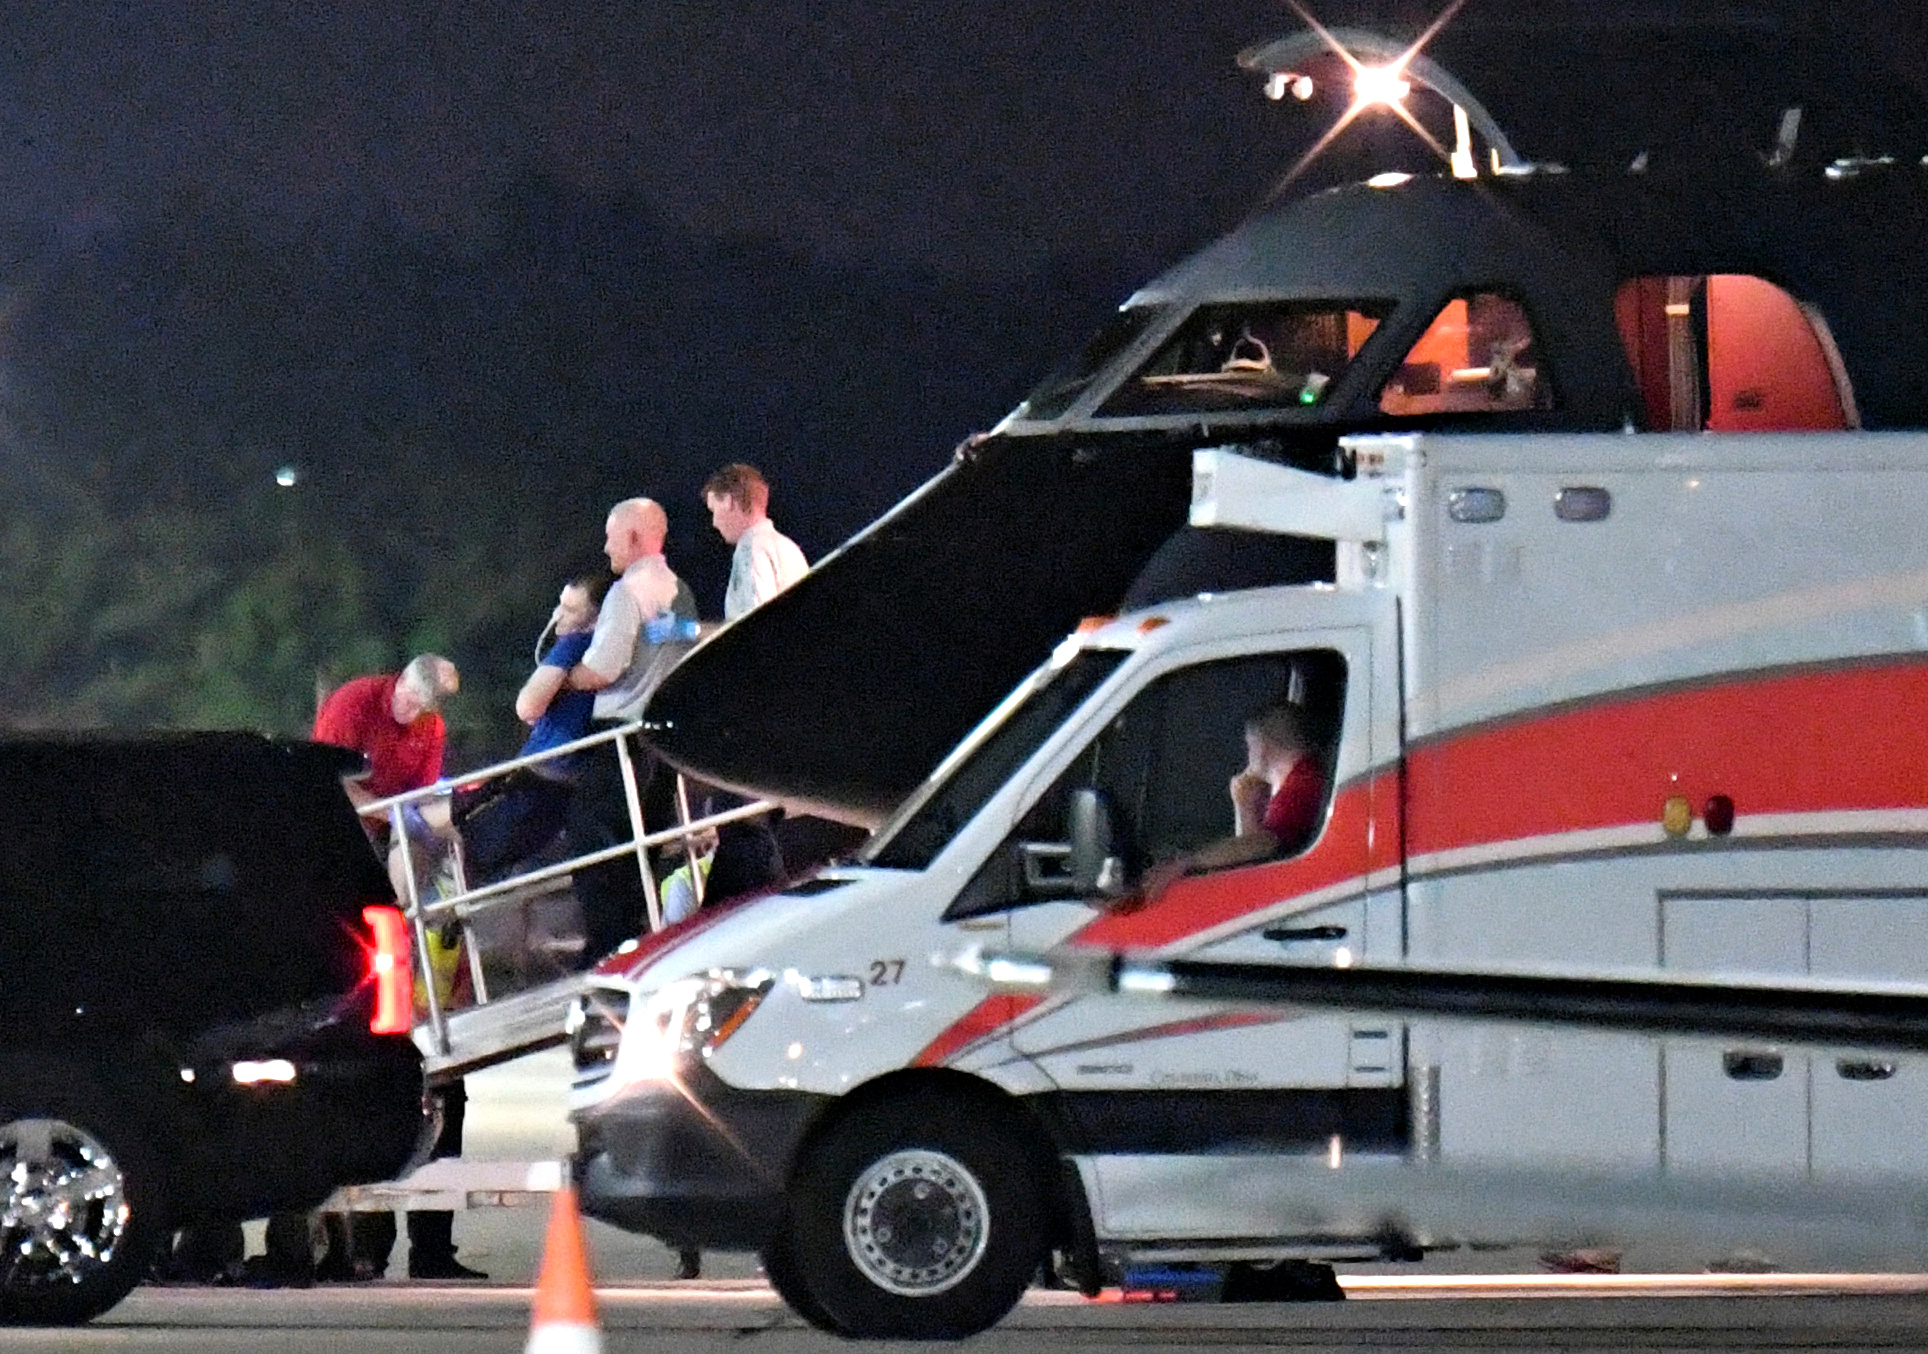 A person believed to be Otto Warmbier is transferred from a medical transport airplane to an awaiting ambulance at Lunken Airport in Cincinnati, Ohio, June 13, 2017.